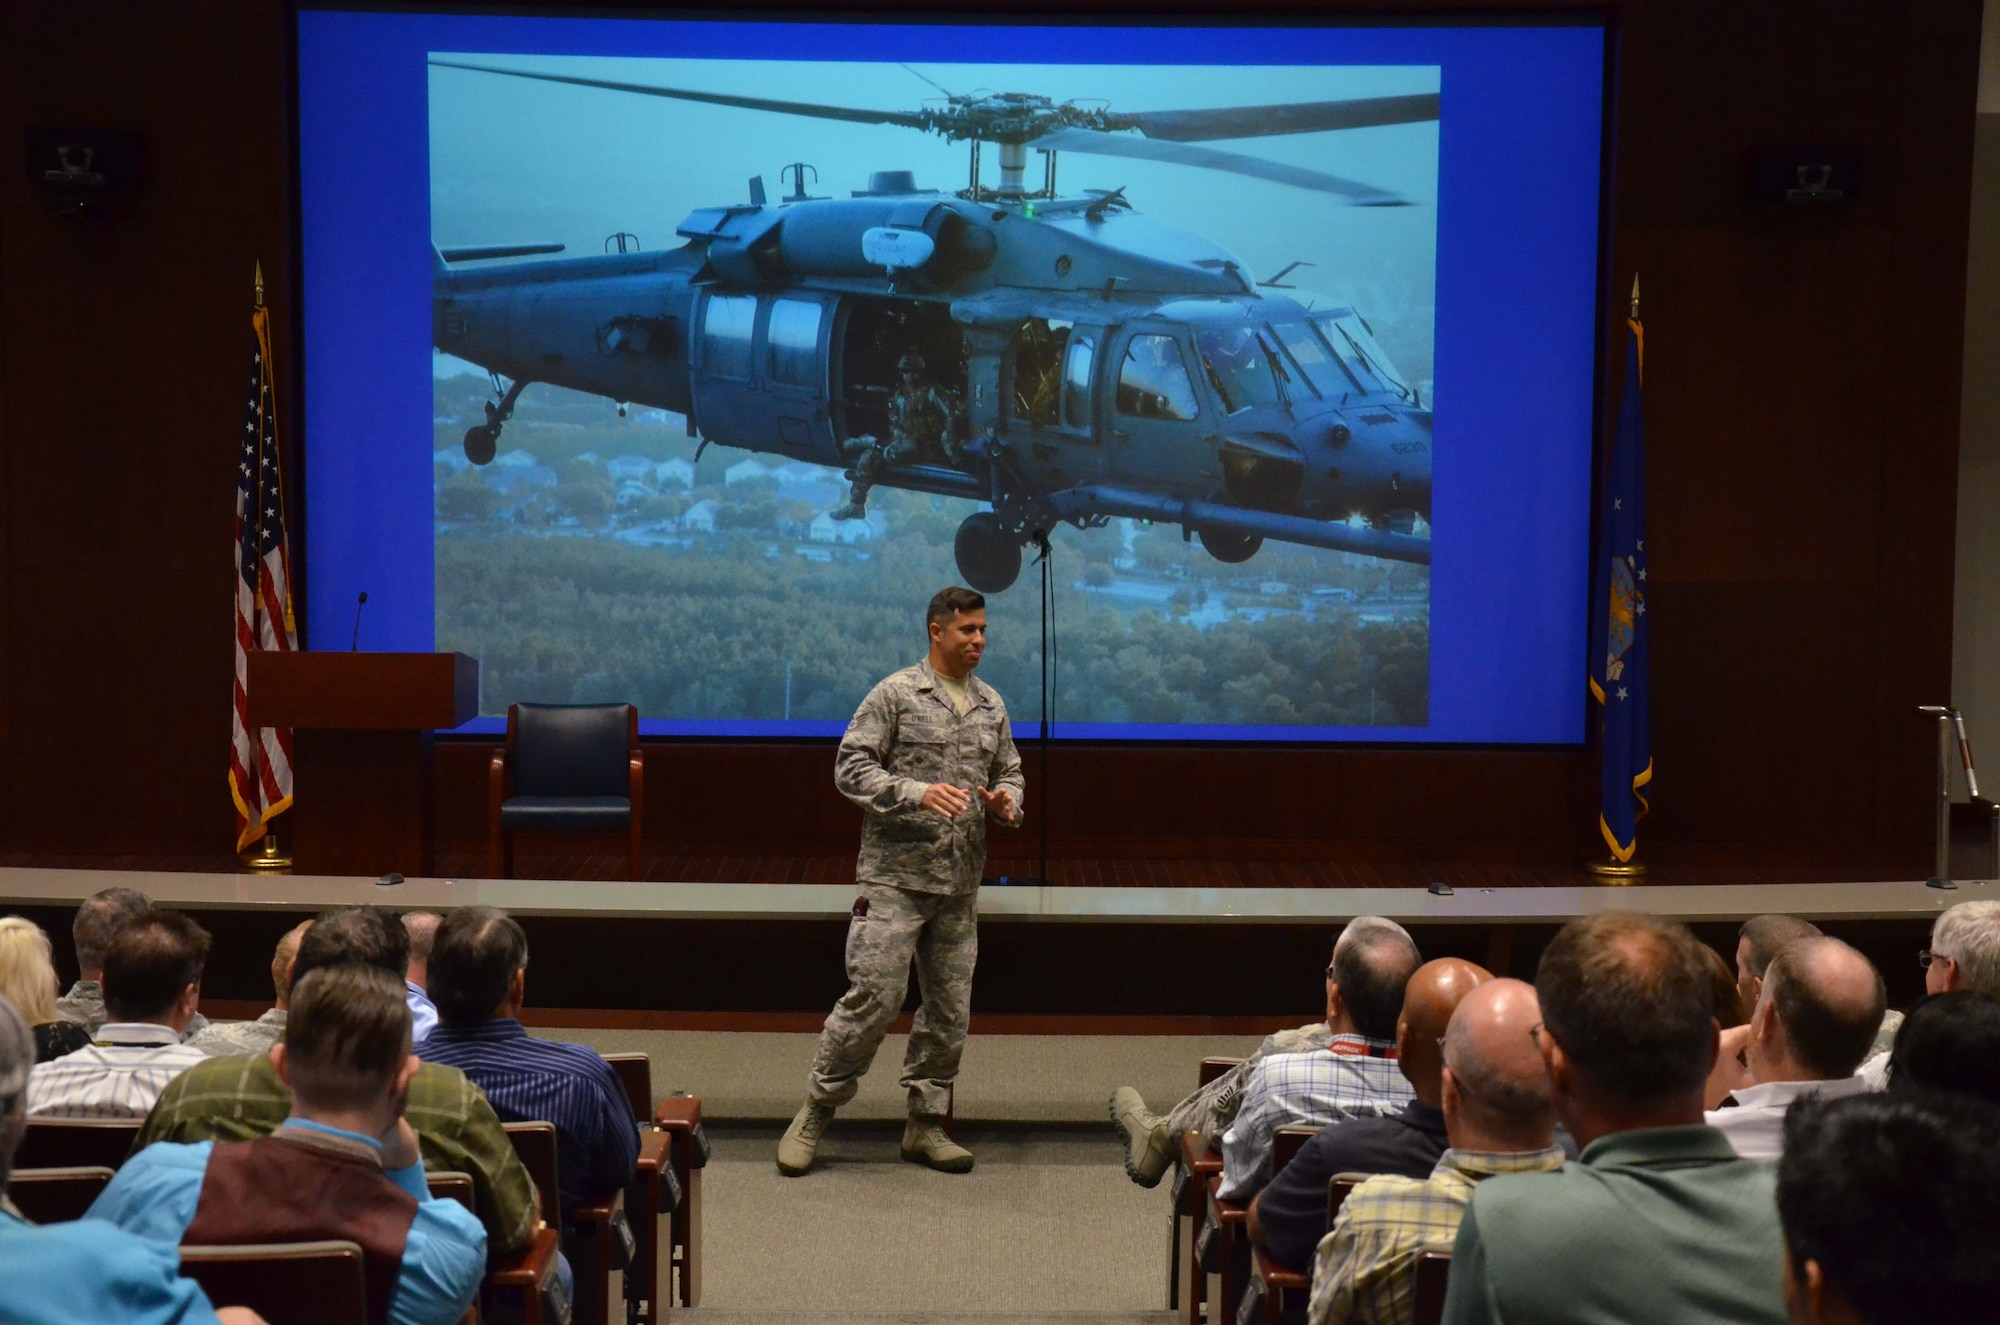 Staff Sgt. August O'Niell, an Air Force pararescueman, briefs members of the Air Force Technical Applications Center about how he sustained significant warzone injury, which led to the amputation of his leg, and how he overcame adversity during AFTAC's Combat Airman Fitness Day May 22, 2017.  O'Niell is the first Air Force pararescue amputee on active duty today. (U.S. Air Force photo by Susan A. Romano)